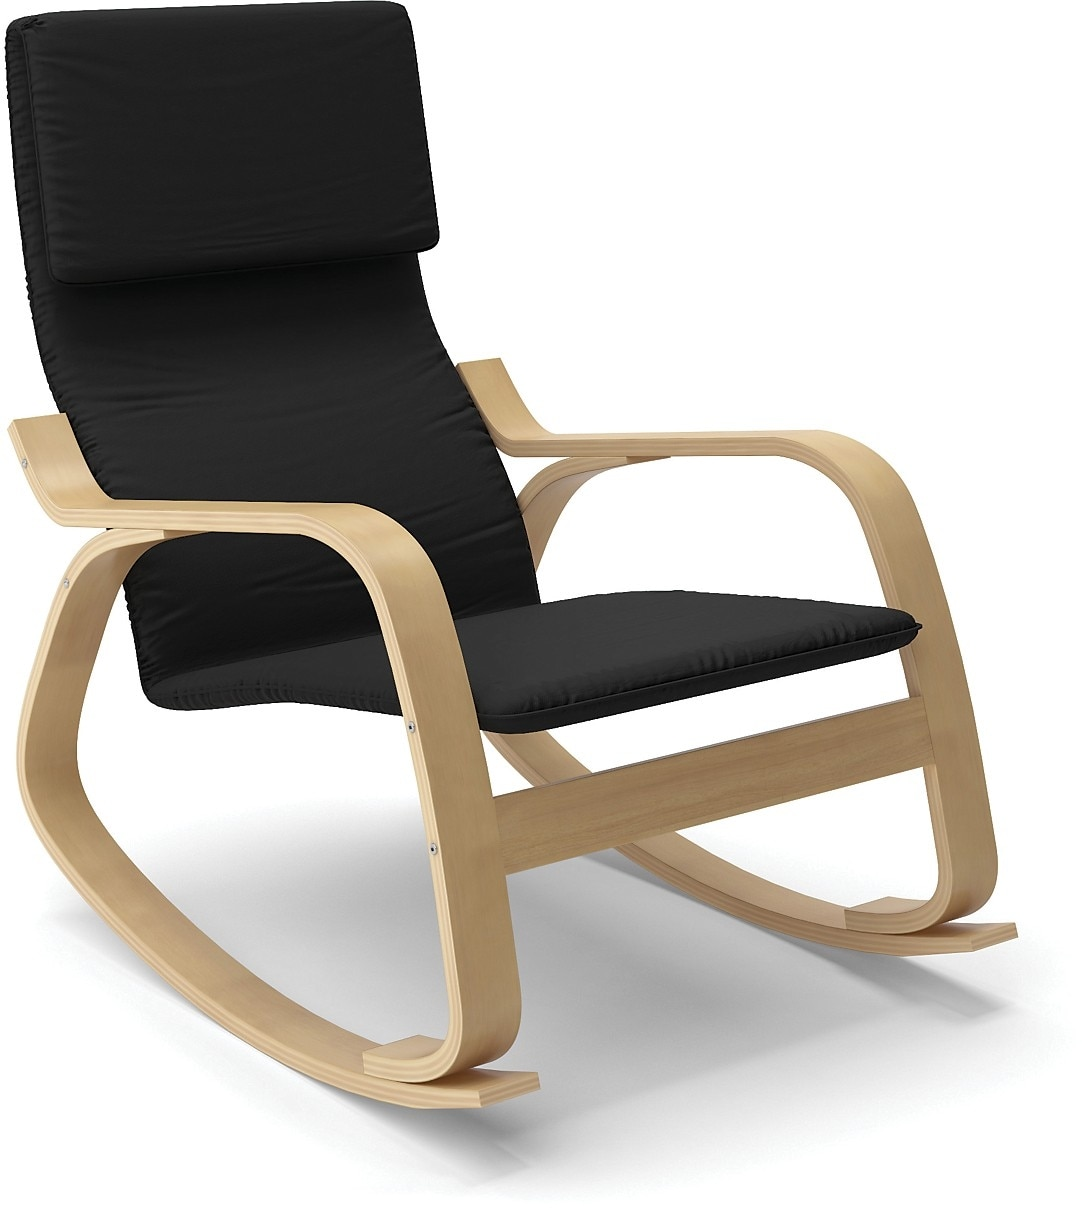 Living Room Furniture - Walsall Rocking Chair